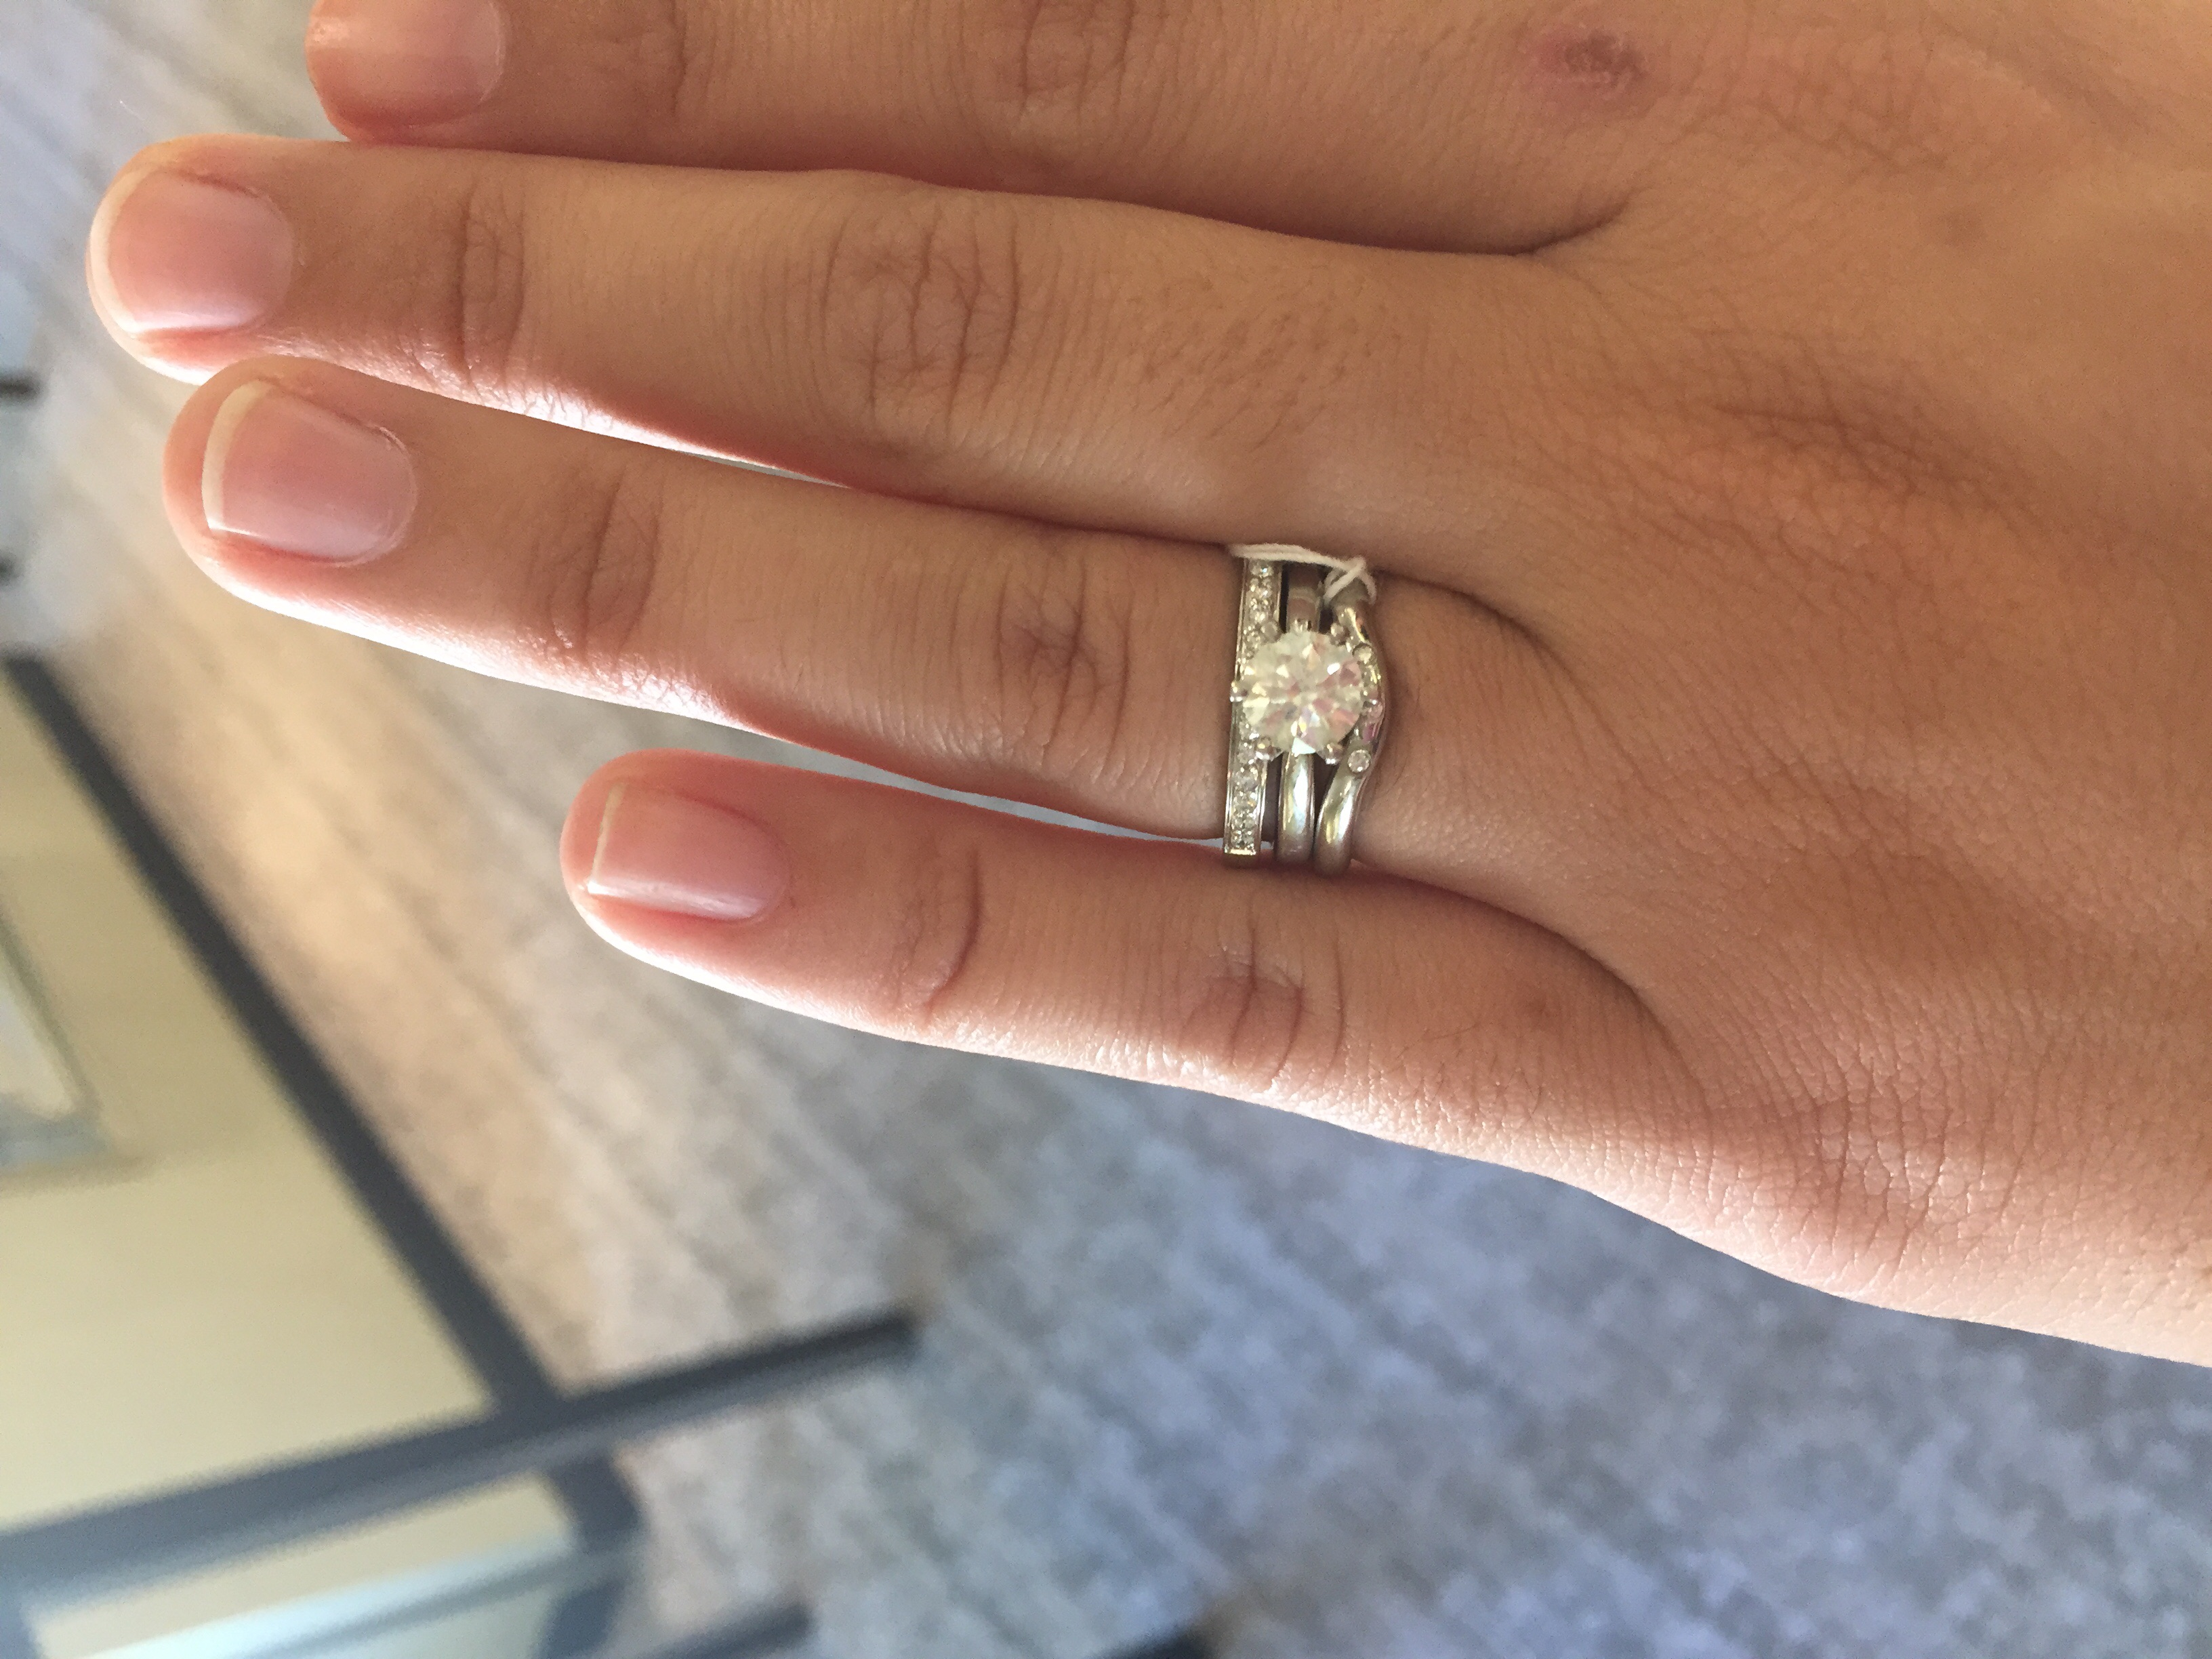 solitaire ering w different wedding rings picture heavy different wedding rings hI everyone so i have been looking for a wedding ring s for months and have tried on so many so I thought I d post incase someone is also looking please